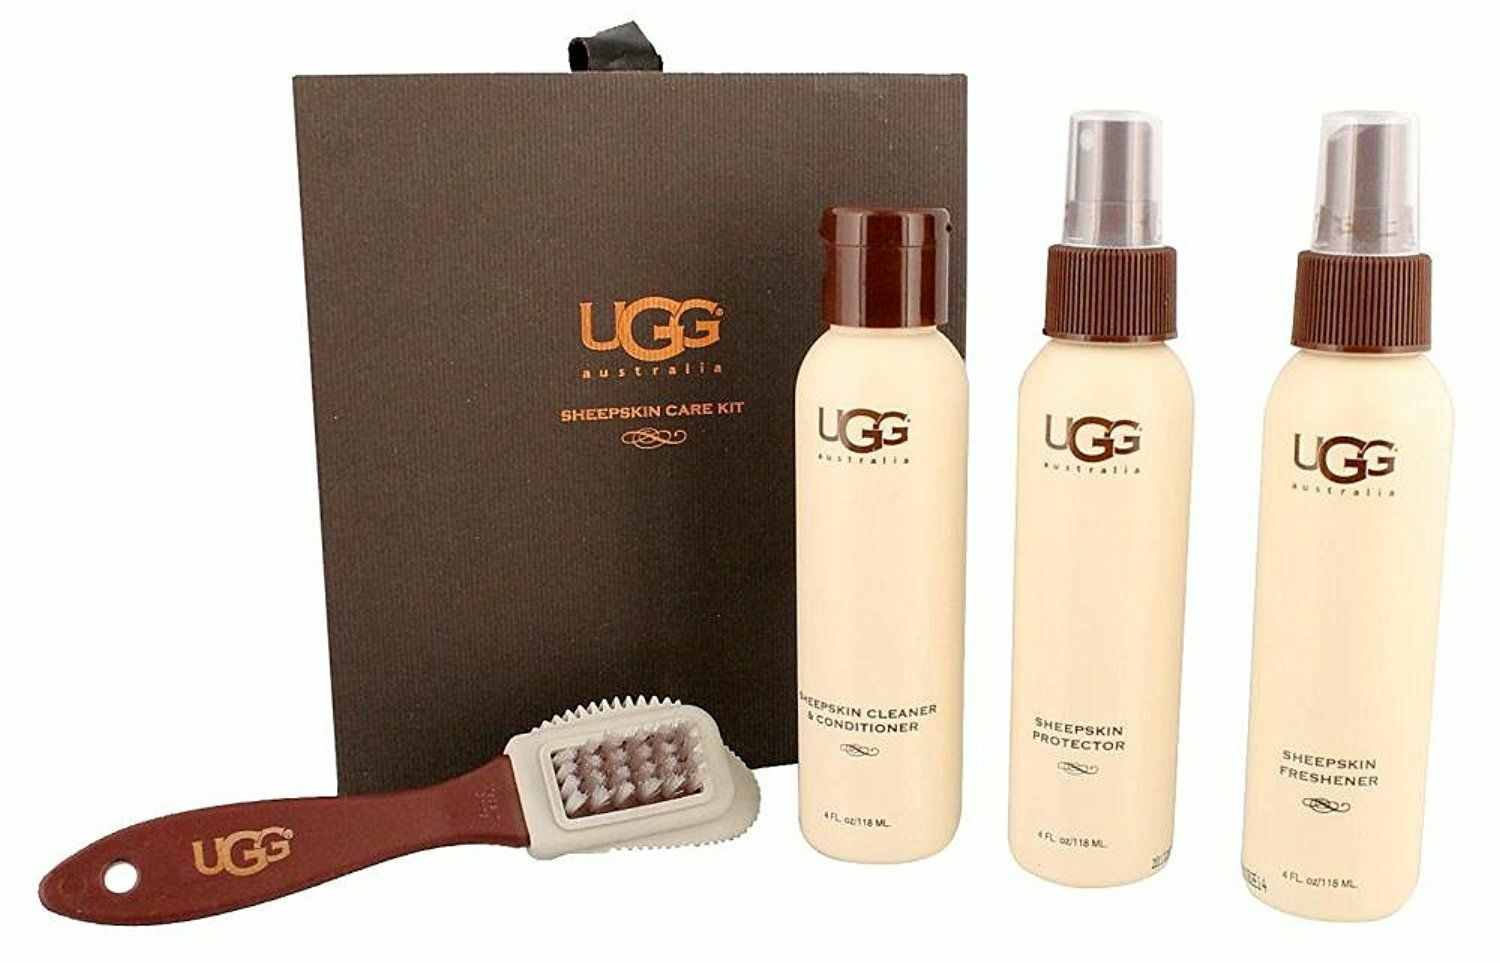 uggs sheepskin care kit